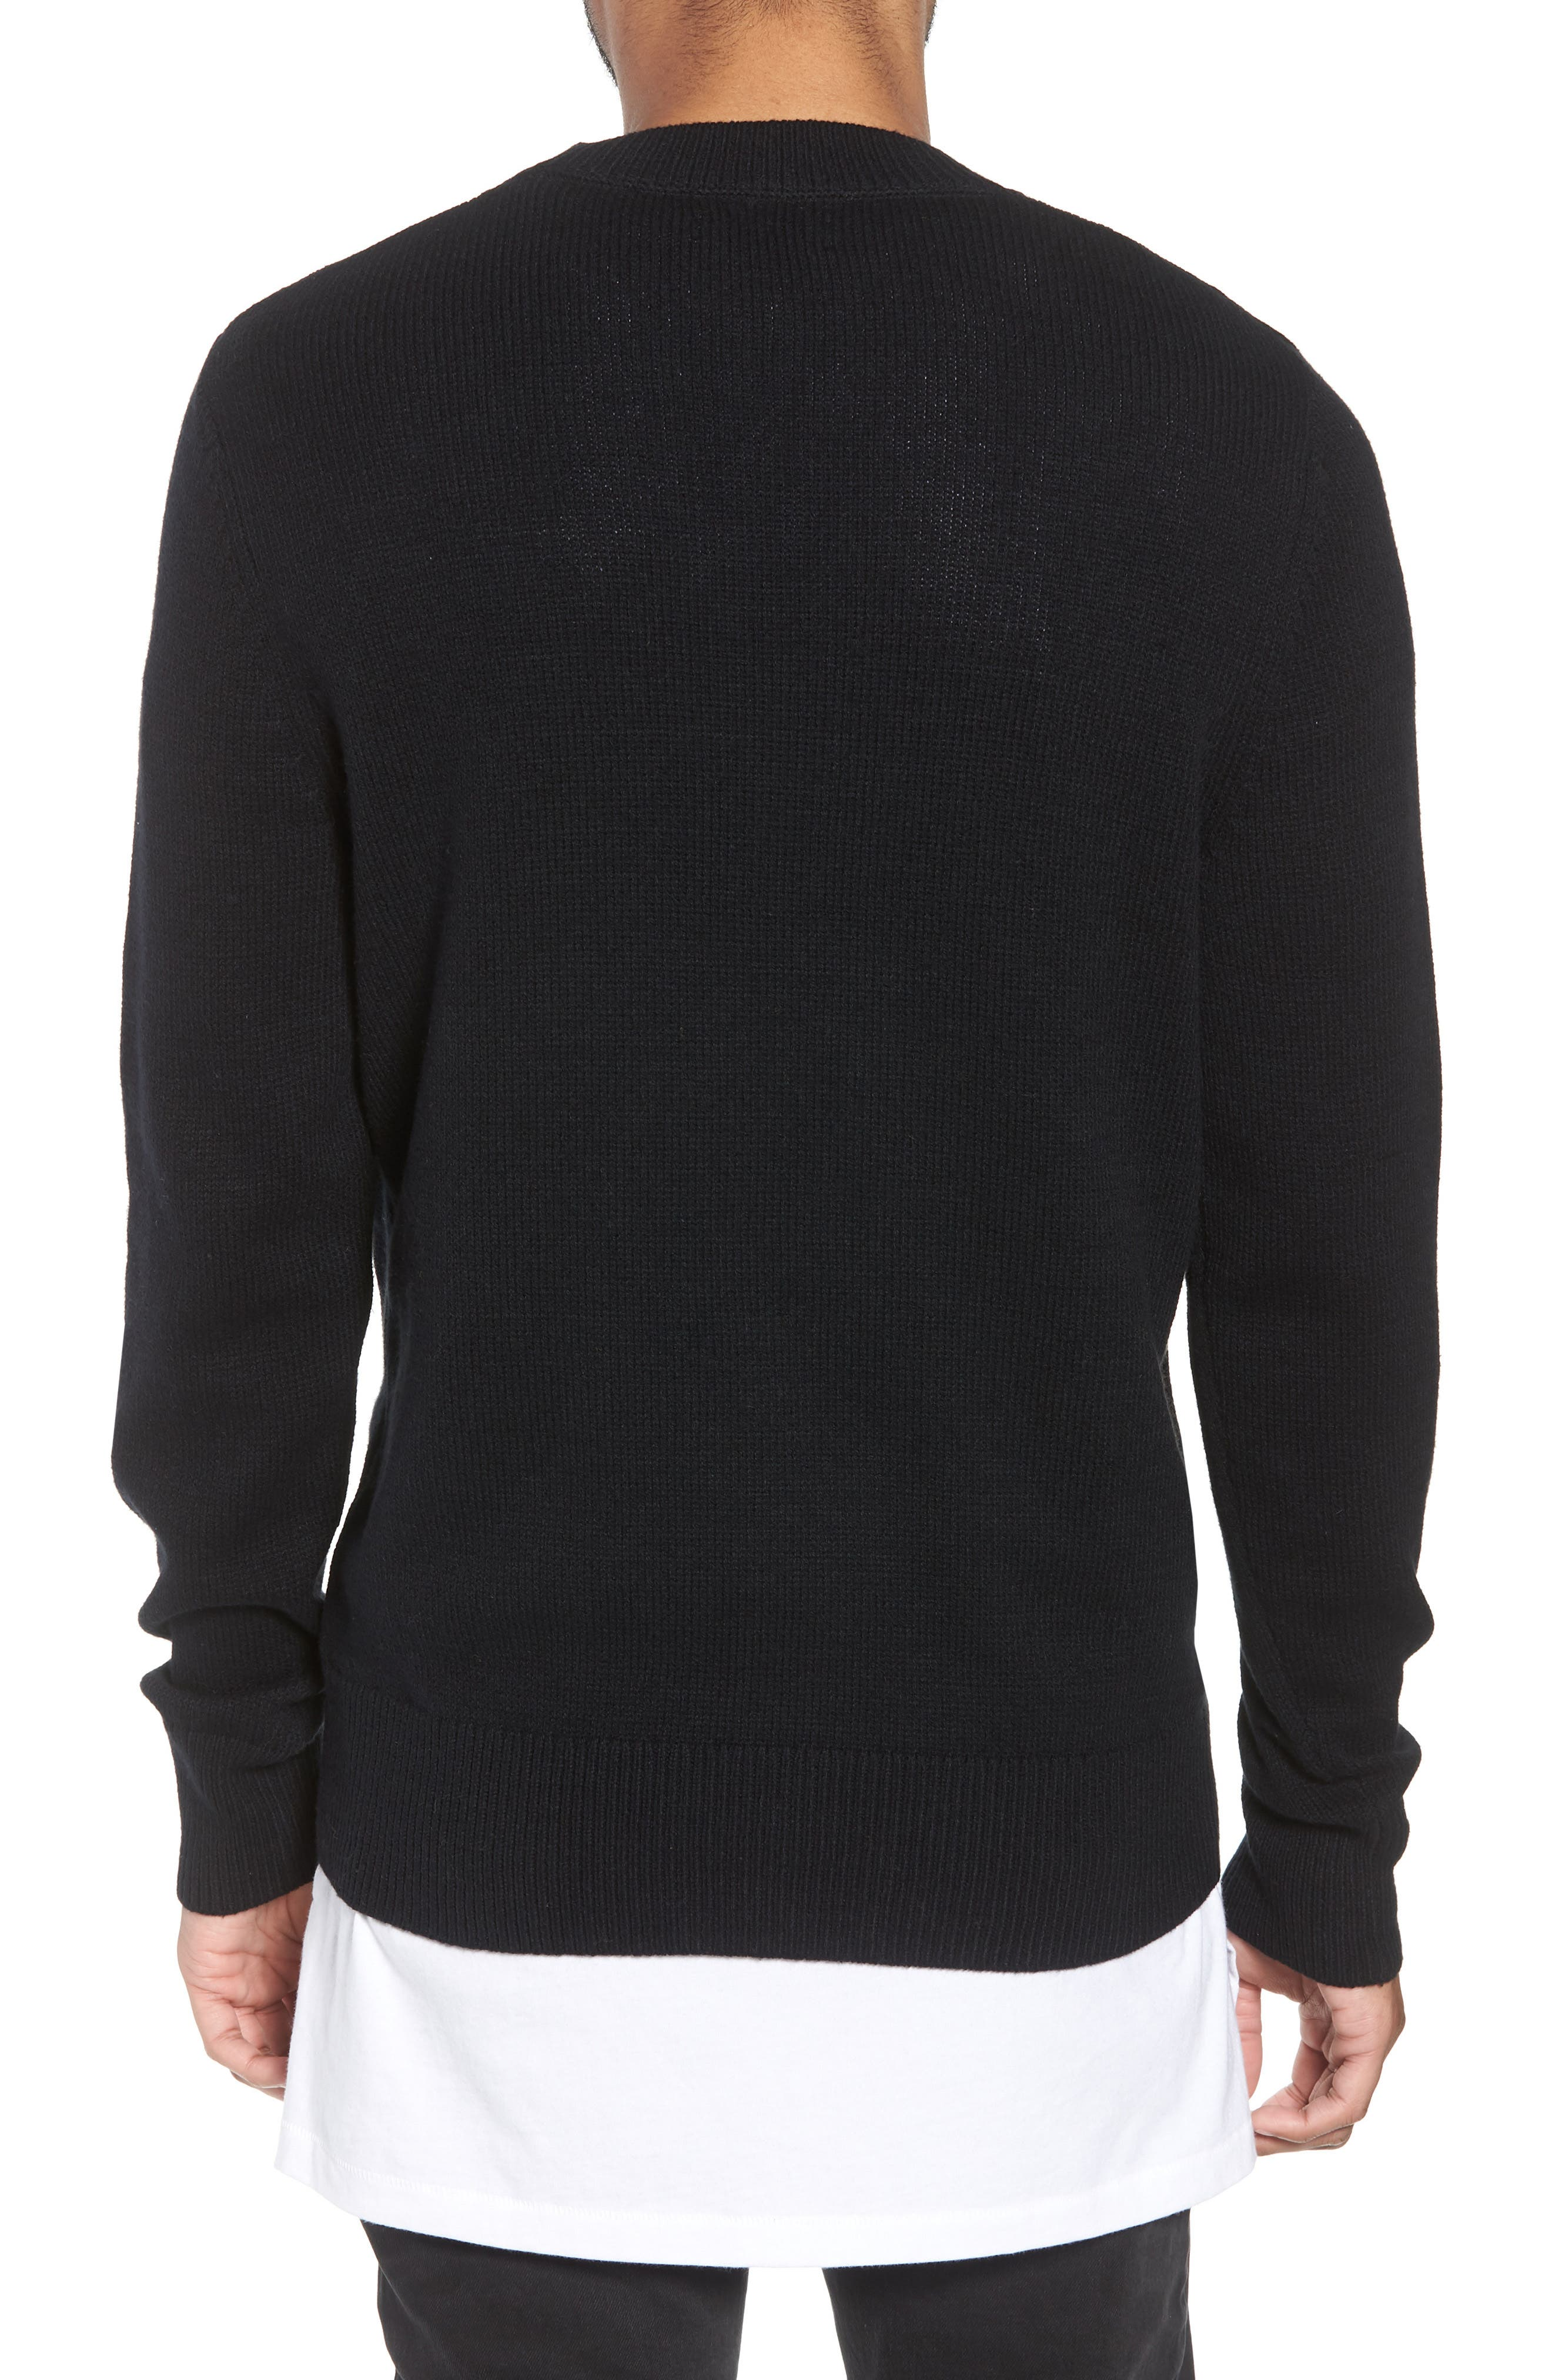 Crewneck Sweater,                             Alternate thumbnail 2, color,                             BLACK ROCK